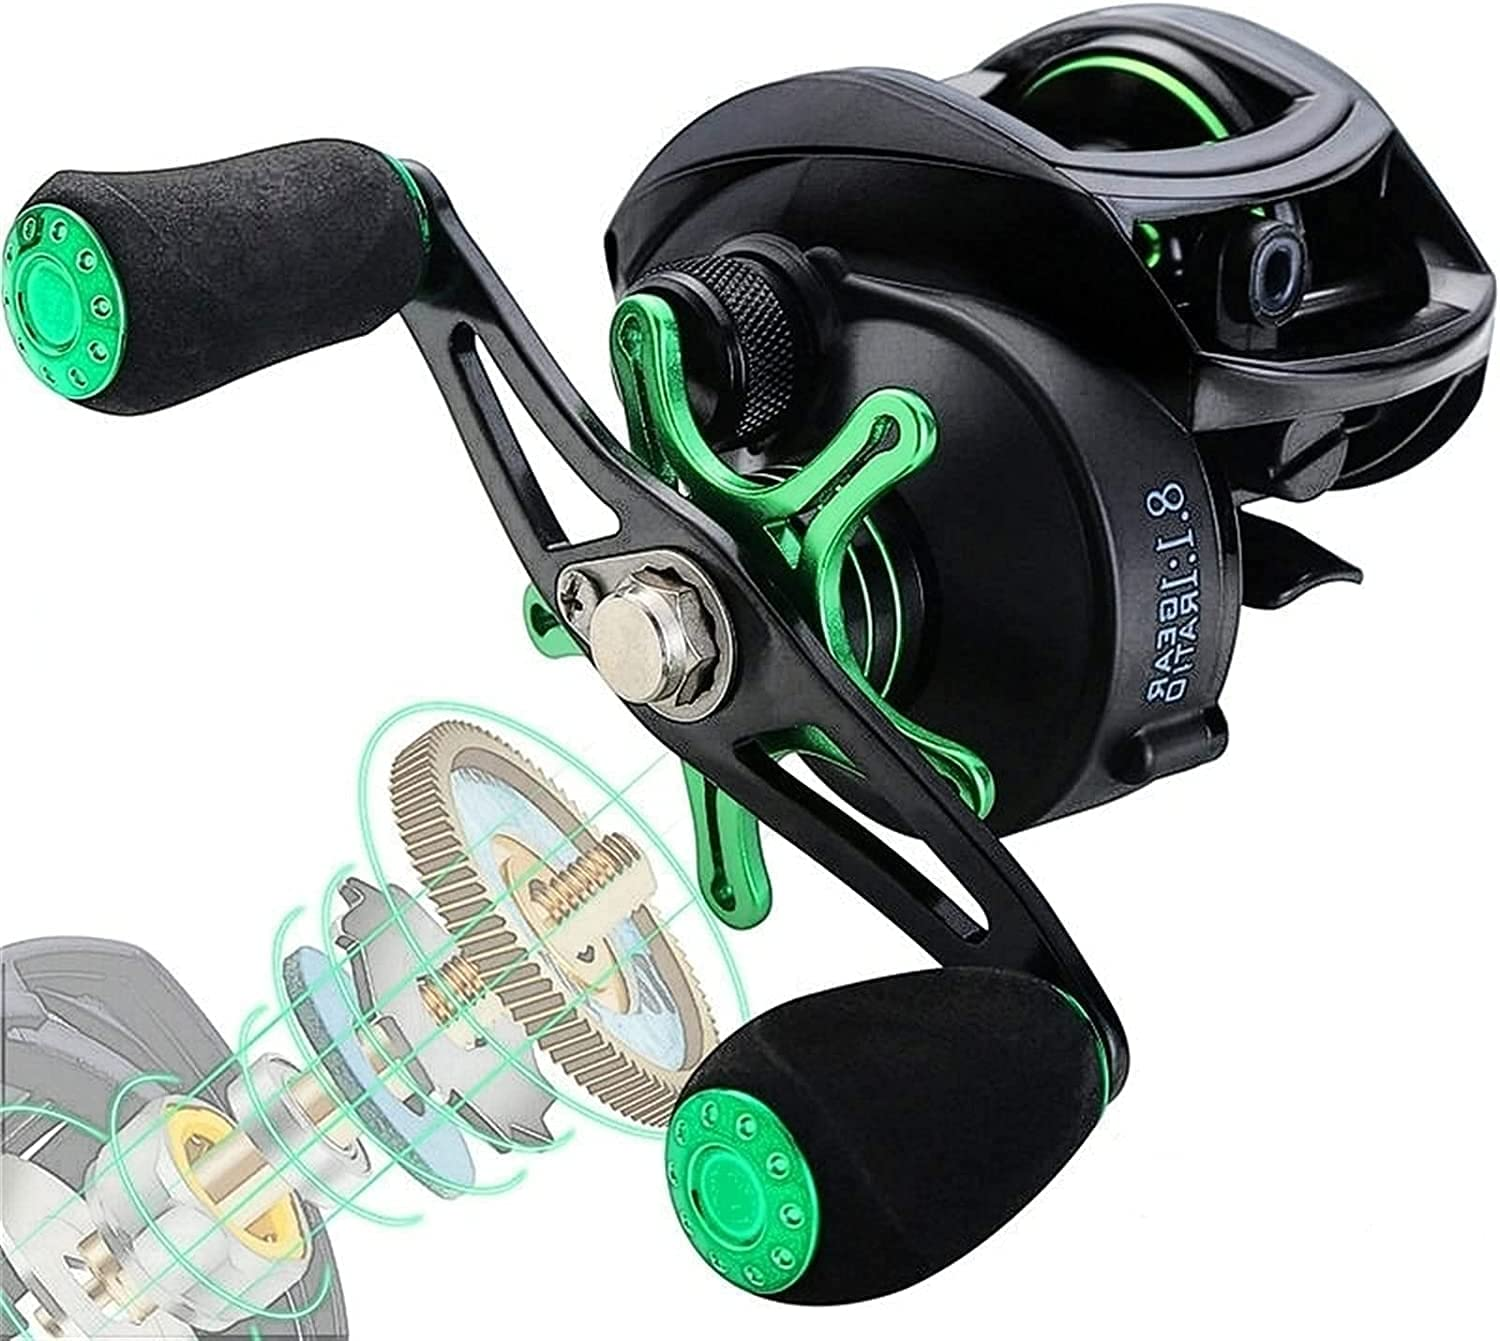 DAYDAY helper Outlet ☆ Free Shipping Latest item Fishing Reel Ree Baitcasting Spinning